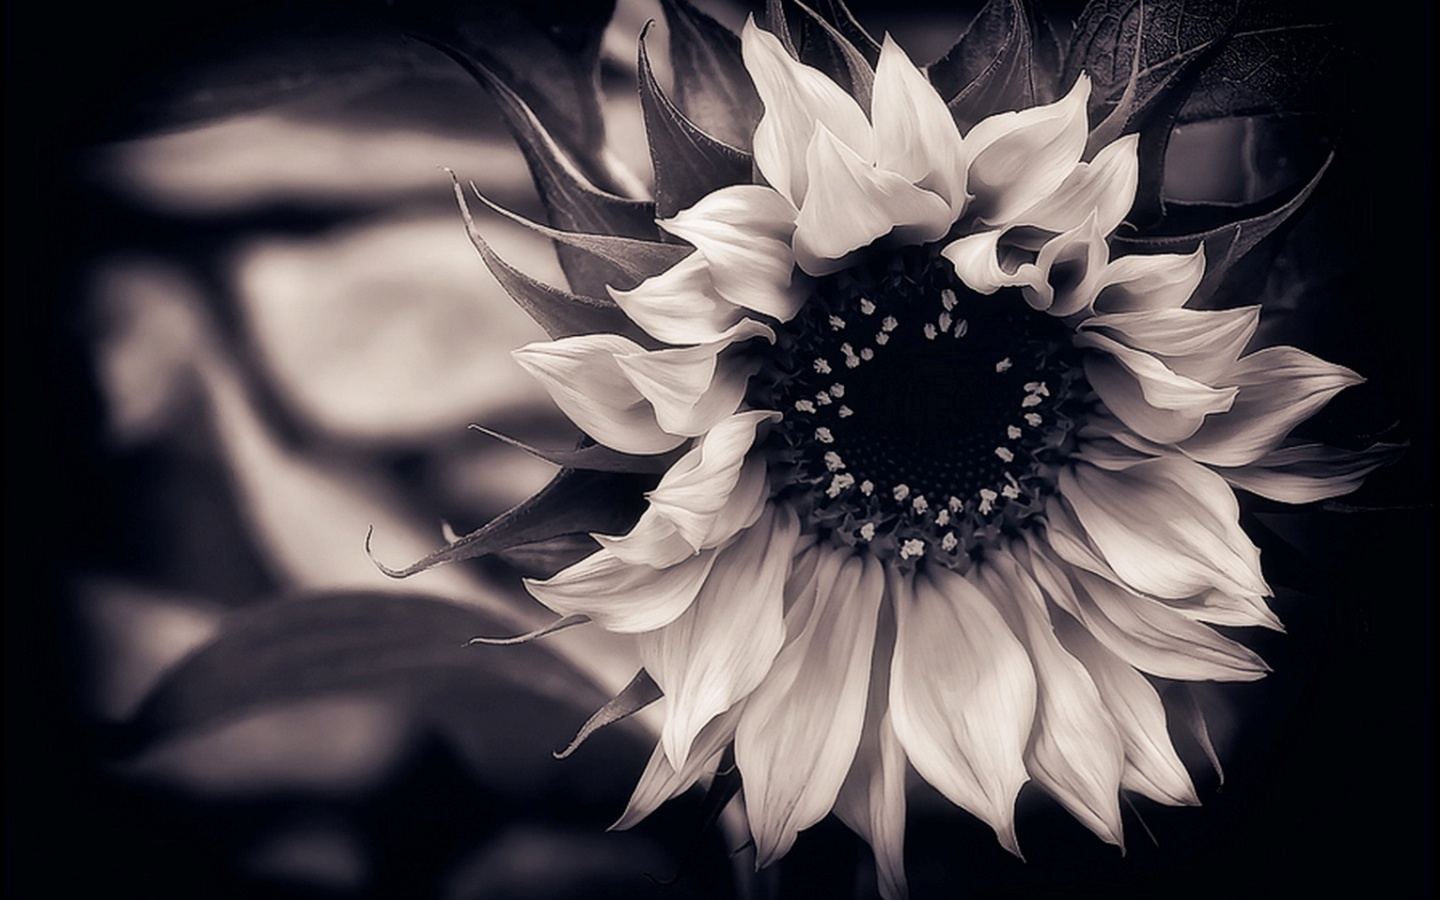 Black Flower Wallpapers Group (68+)